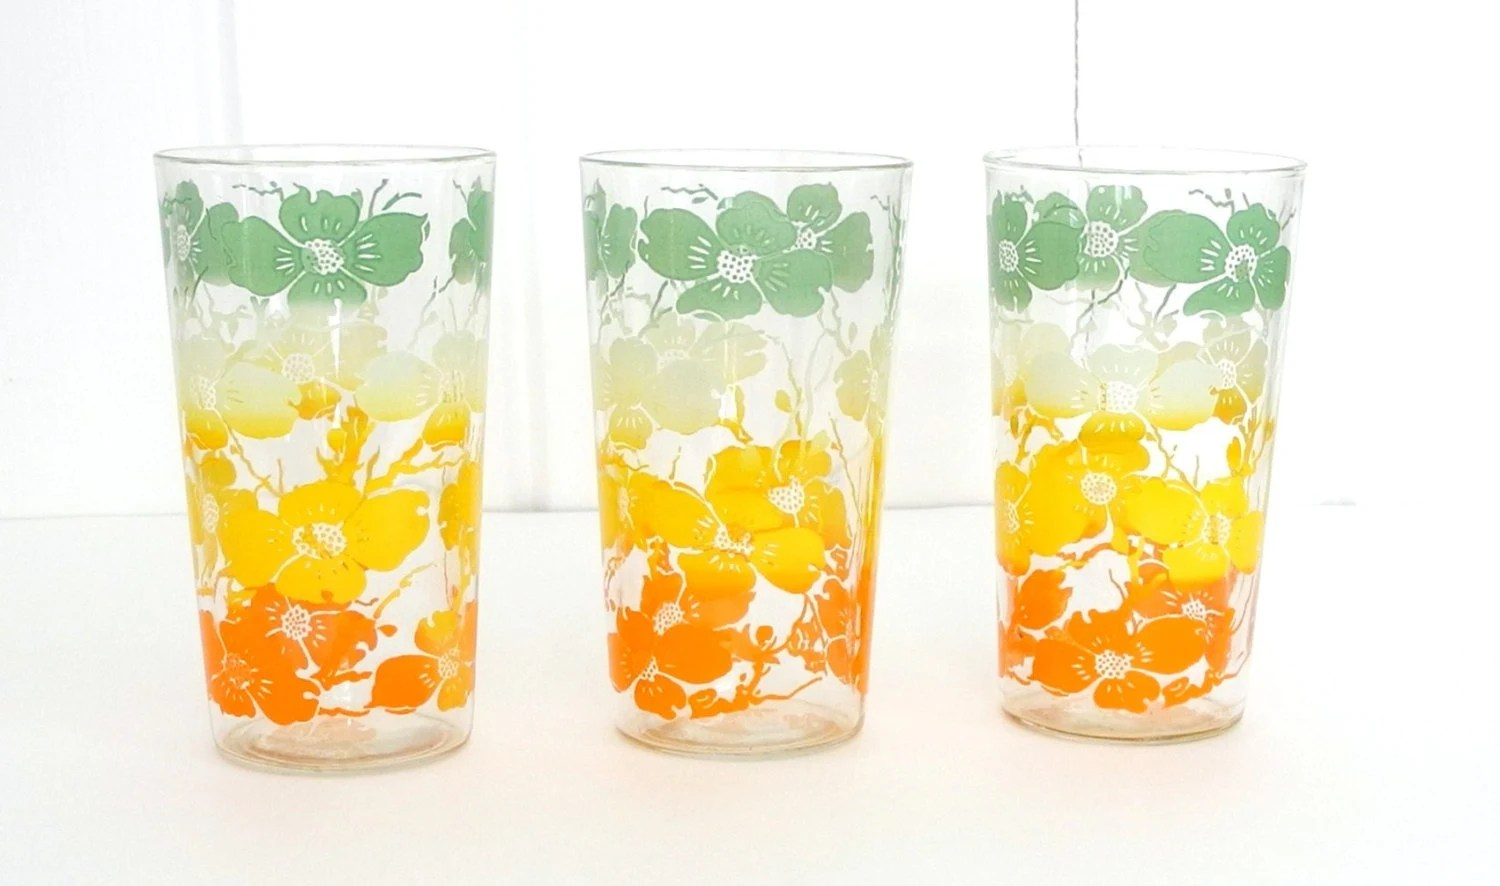 Farmhouse Drinking Glasses Vintage Retro Set Of 3 Floral Drinking Glasses By